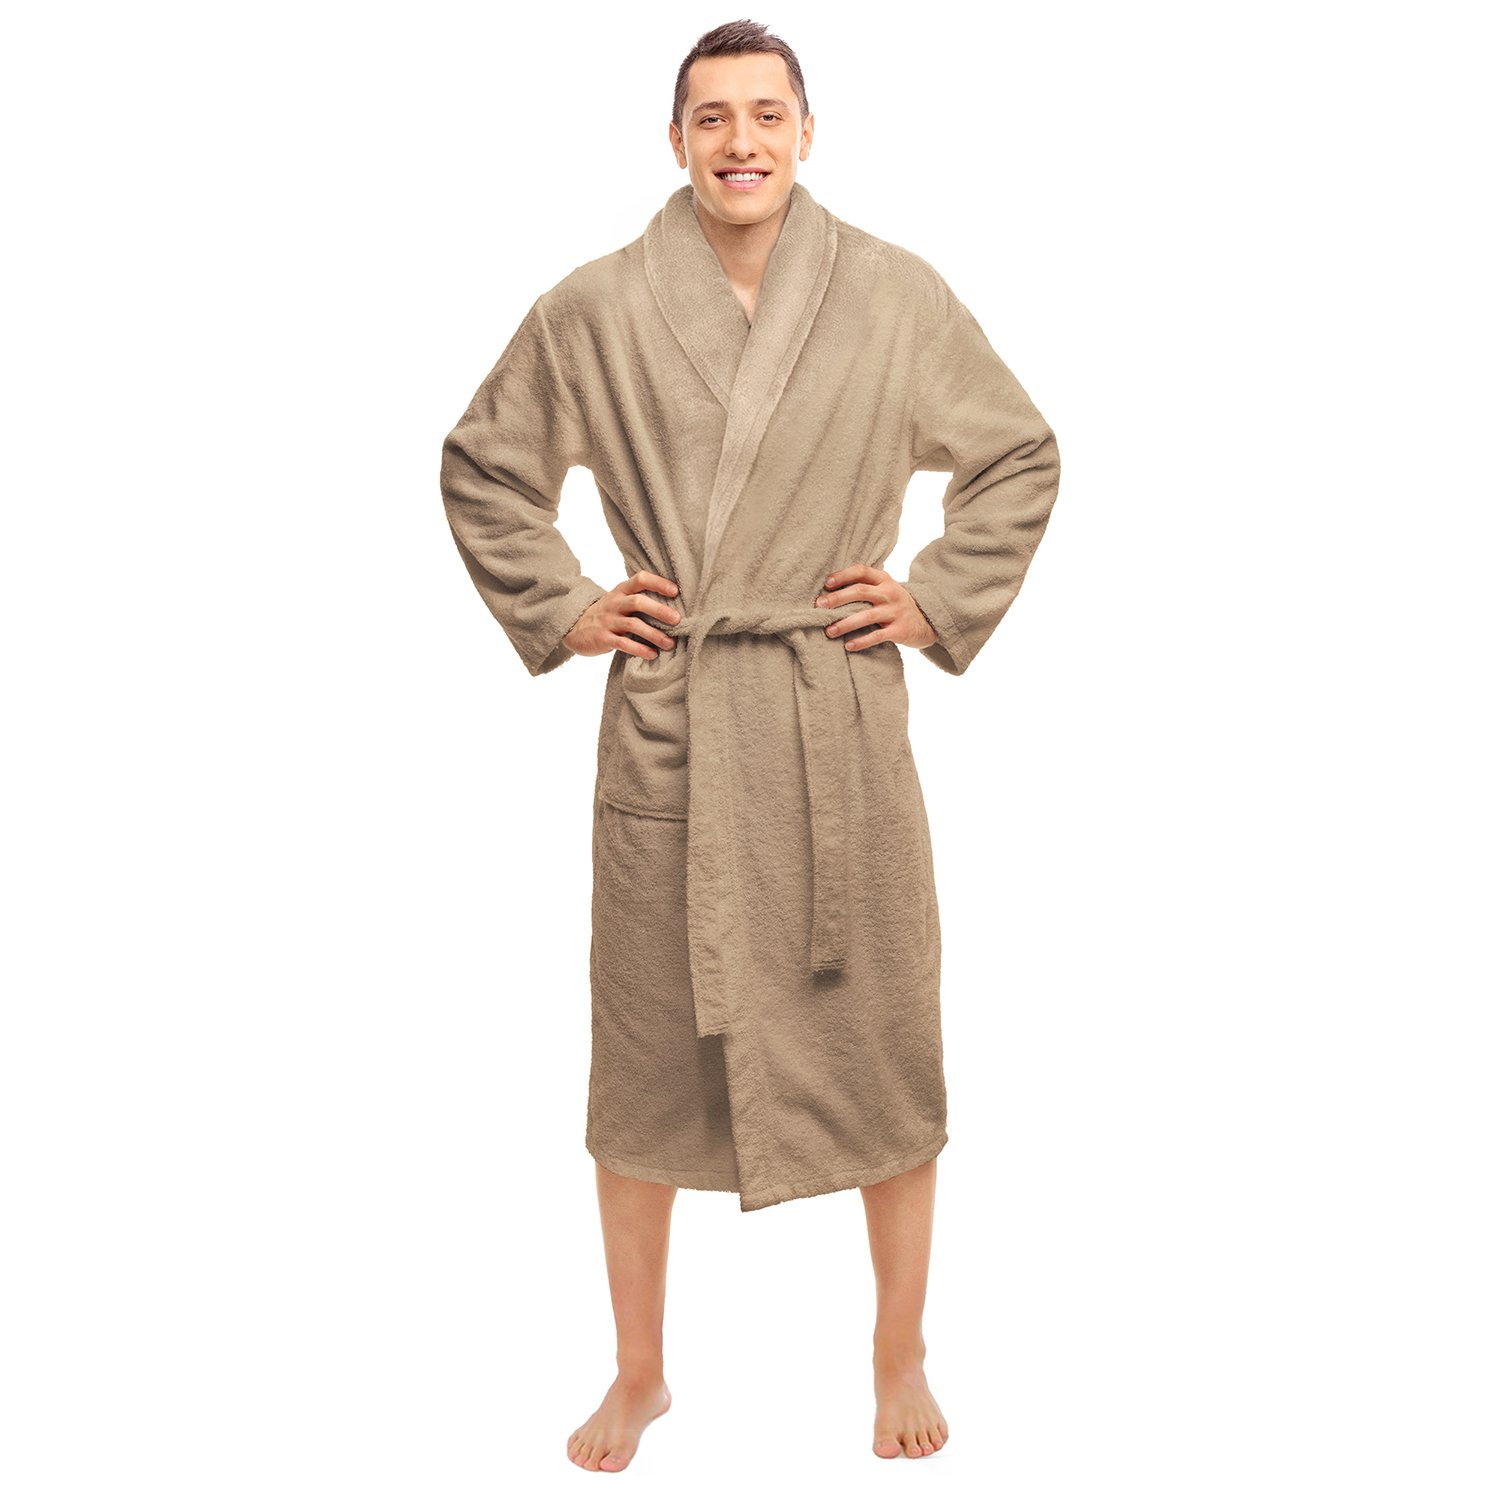 Blue Nile Mills Hotel & Spa Taupe Robe, Plush Terry Weave, 100% Premium Long-Staple Combed Cotton, Unisex Bathrobe for Women and Men, Extra Large Size